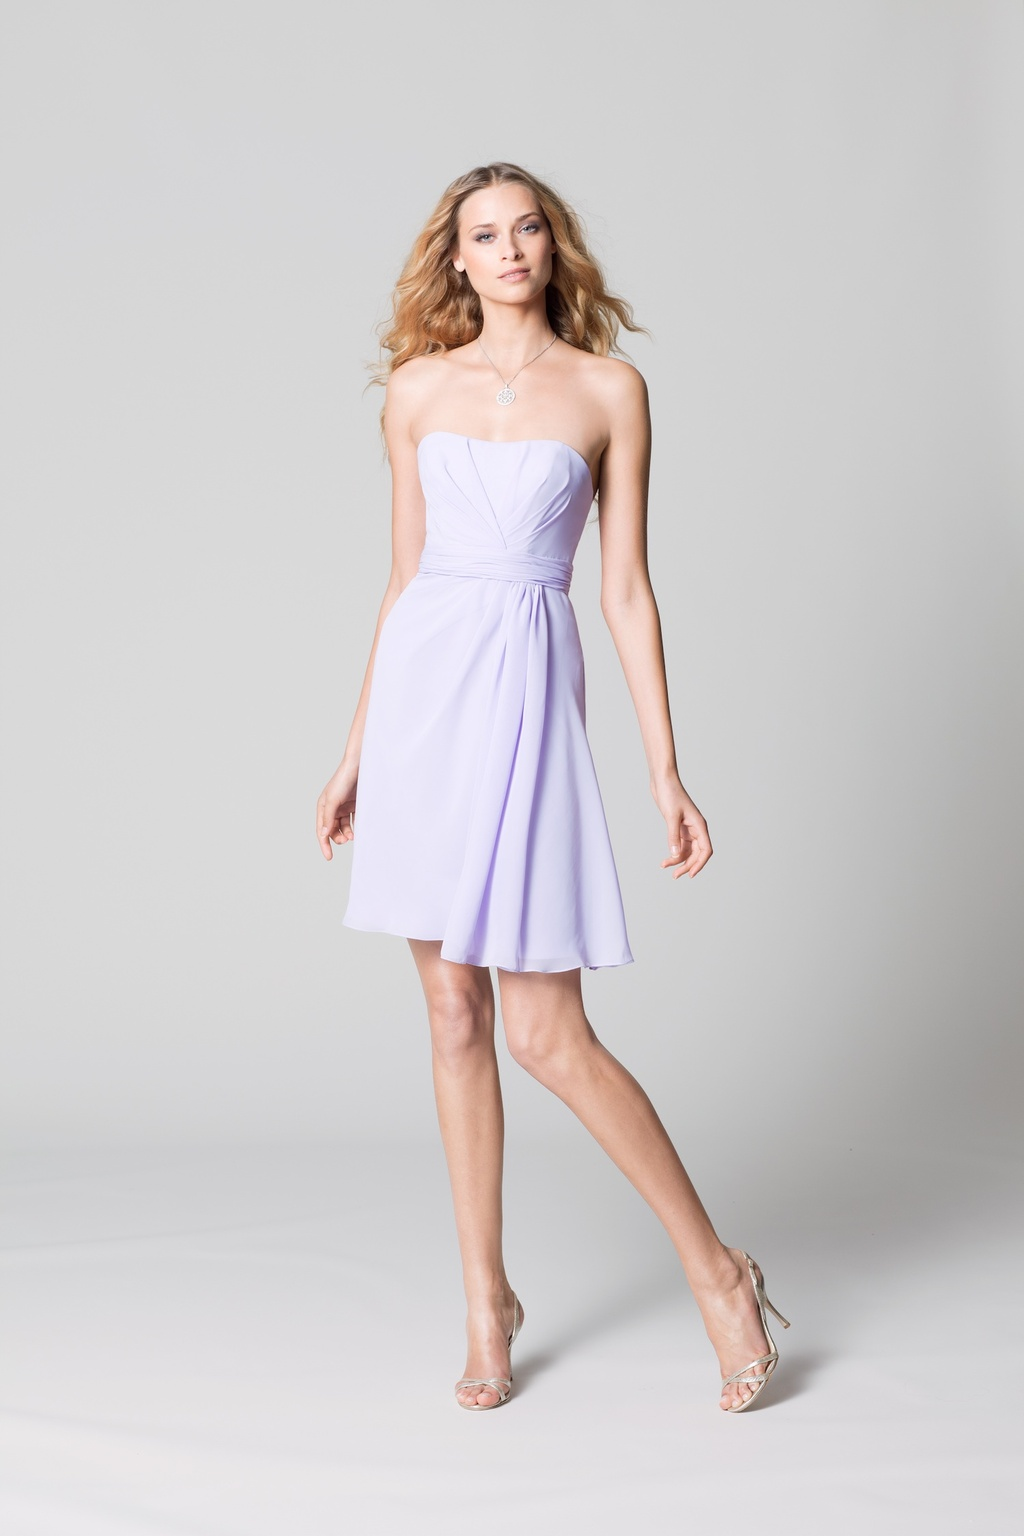 Affordable-bridesmaids-dresses-fall-2012-wtoo-by-watters-bridal-party-soft-lilac.full